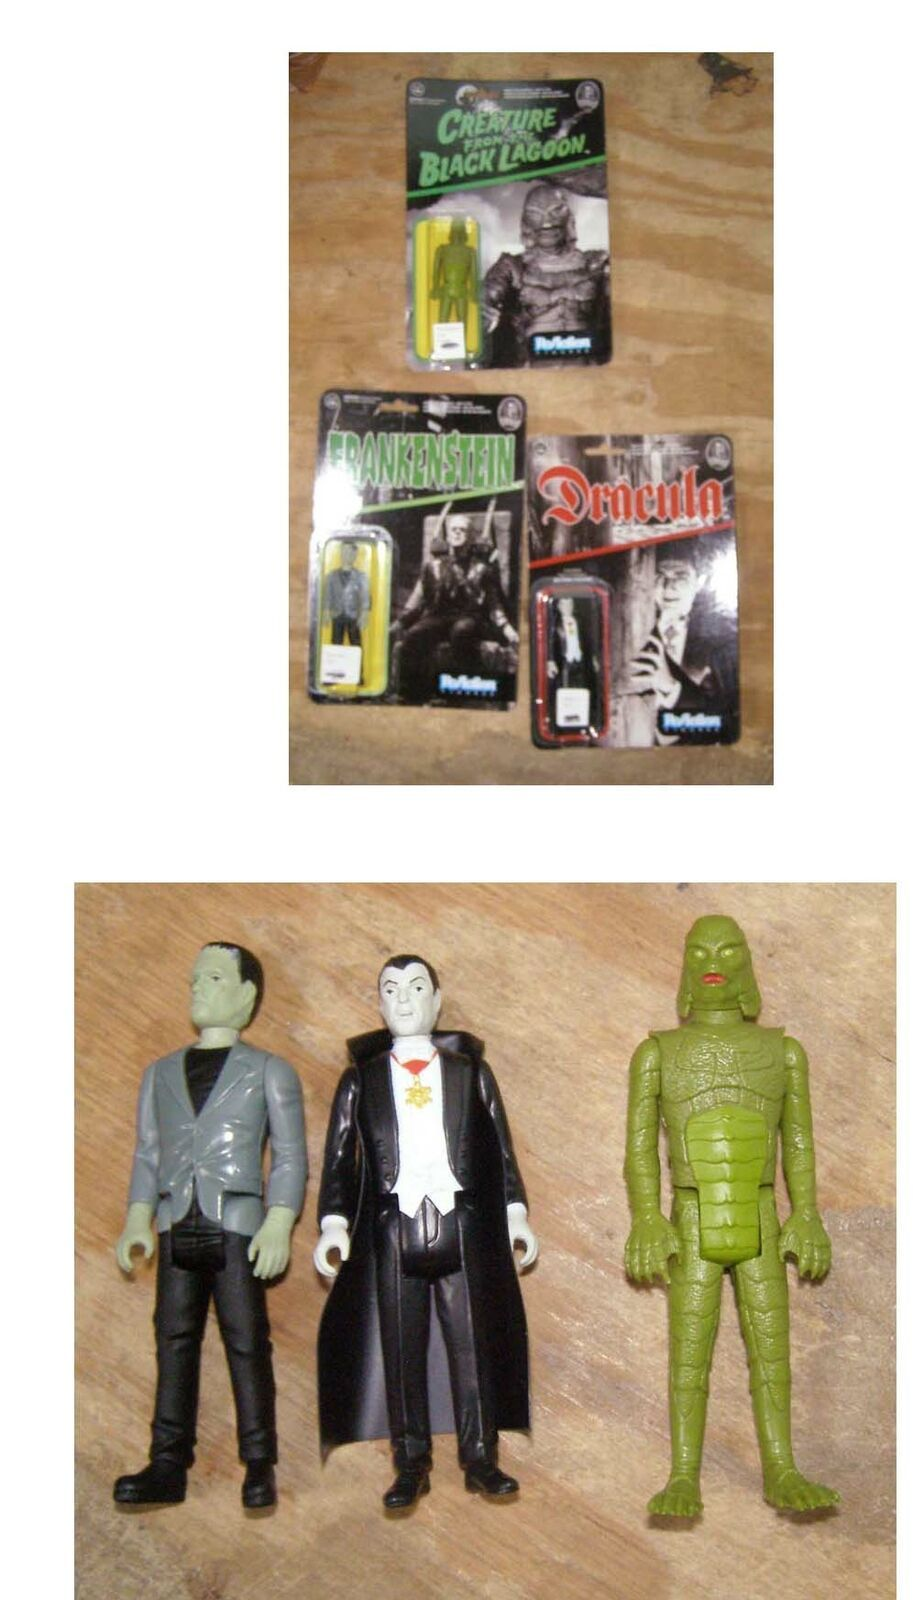 Universal Monsters Figures Frankenstein Dracula Creature From The Black Lagoon R